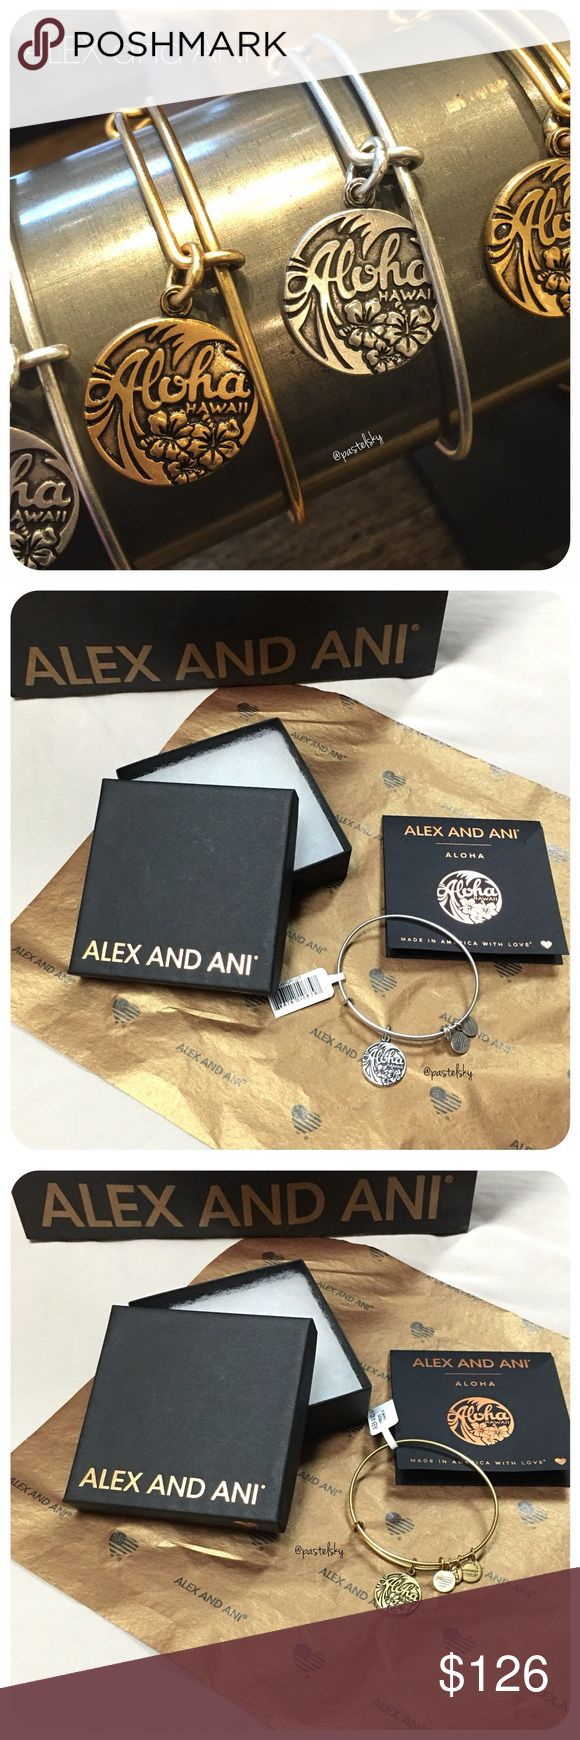 listing for @steffielin 🆕 ALEX AND ANI Aloha Hawaii bracelets  bundle includes 1 silver and 1 gold bracelet, their cards, two retail bags, two boxes and tissue paper.  due to lighting- color of actual item may vary slightly from photos.  bundle excluded from any discounts.  please don't hesitate to ask questions. happy POSHing 😊 Alex and Ani Jewelry Bracelets